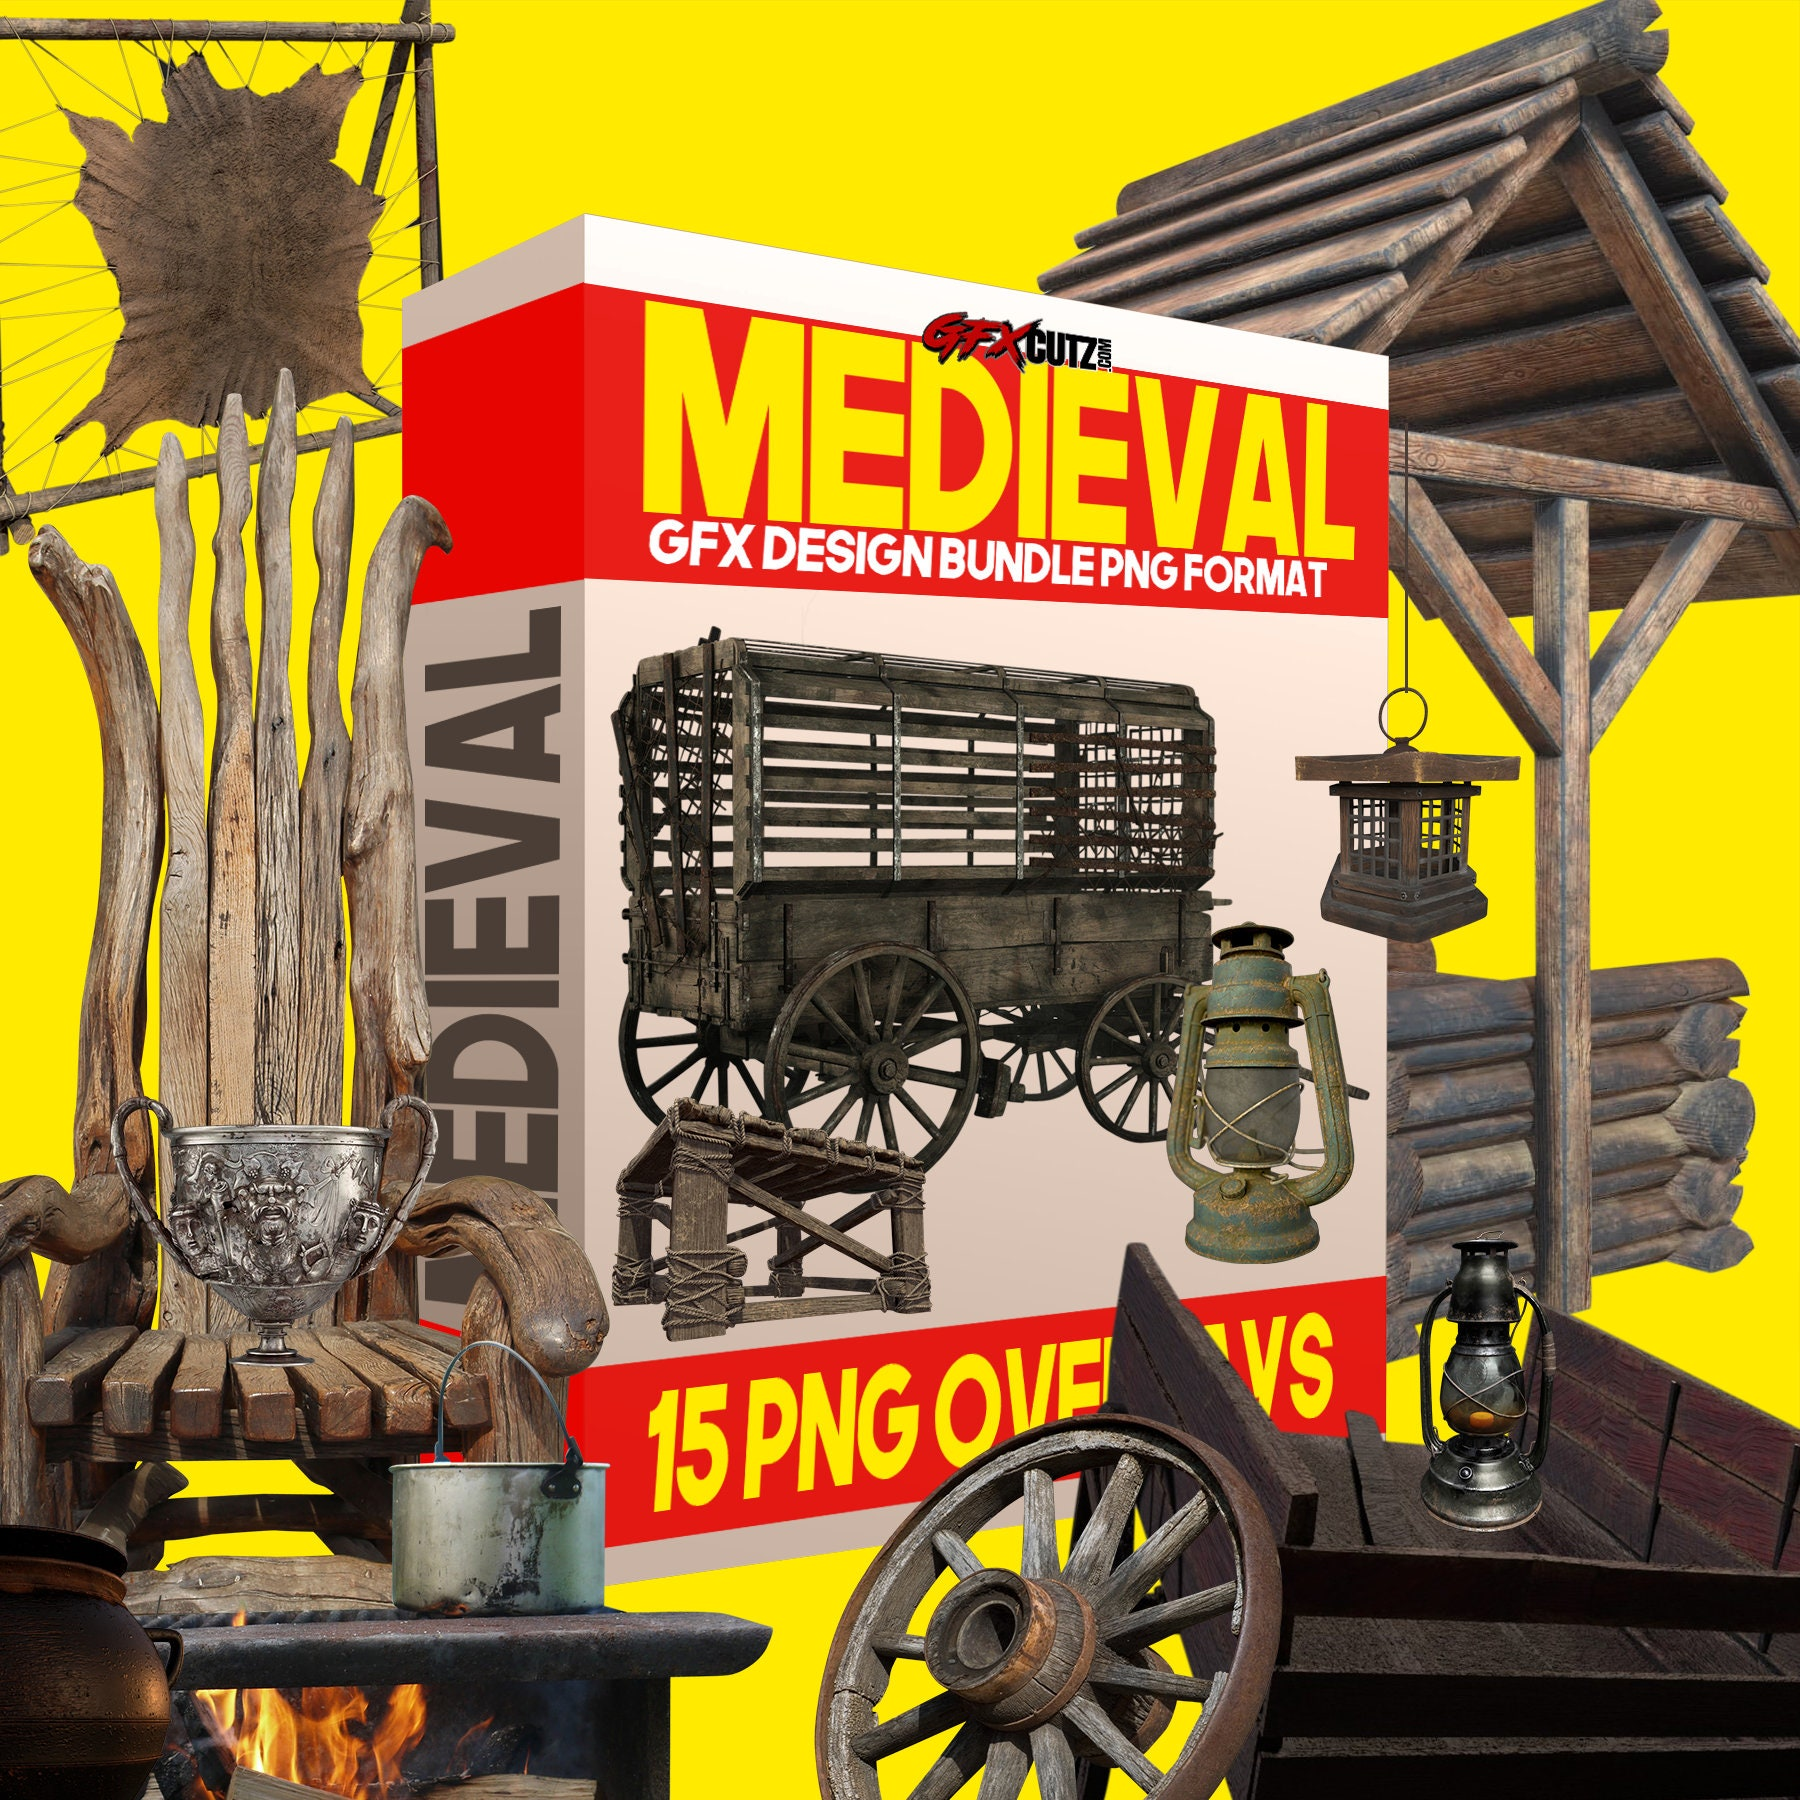 Medieval Photoshop Overlays, In PNG format great for Digital